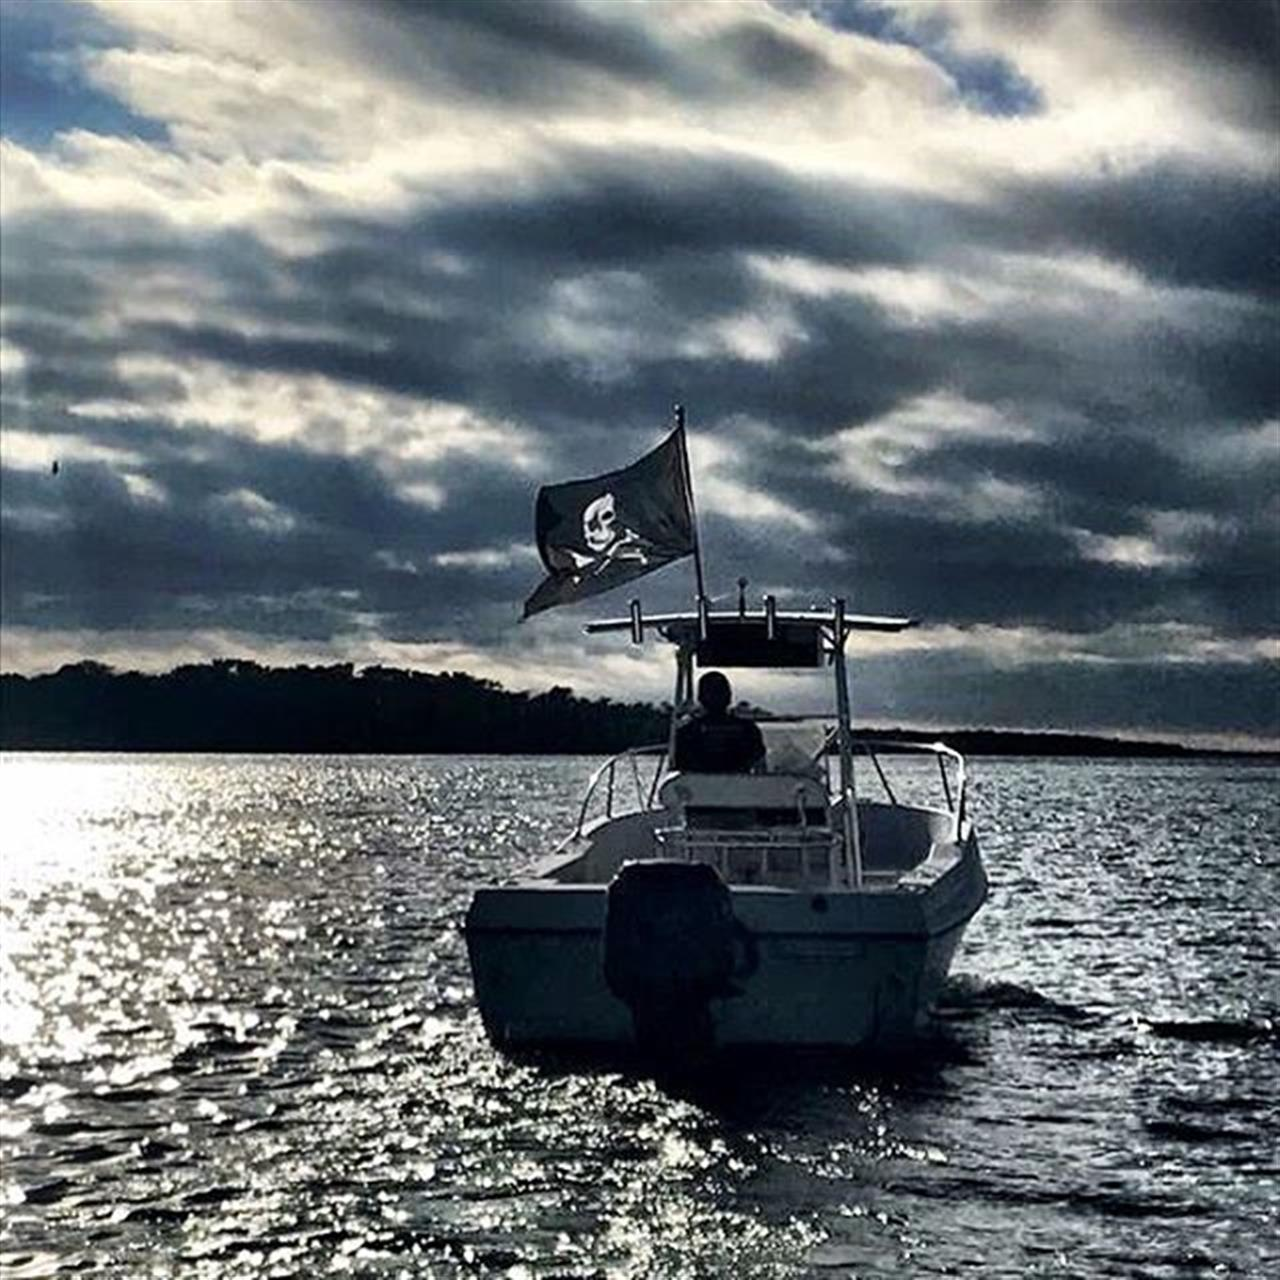 Another day on the bay. Ôÿá #onaboat #tampabay #tampa #alafiariver #beercanisland #aquasport #boat #pirate #pirateflag #gasparilla #centerconsole #realtorlife #winterinflorida #leadingrelocal